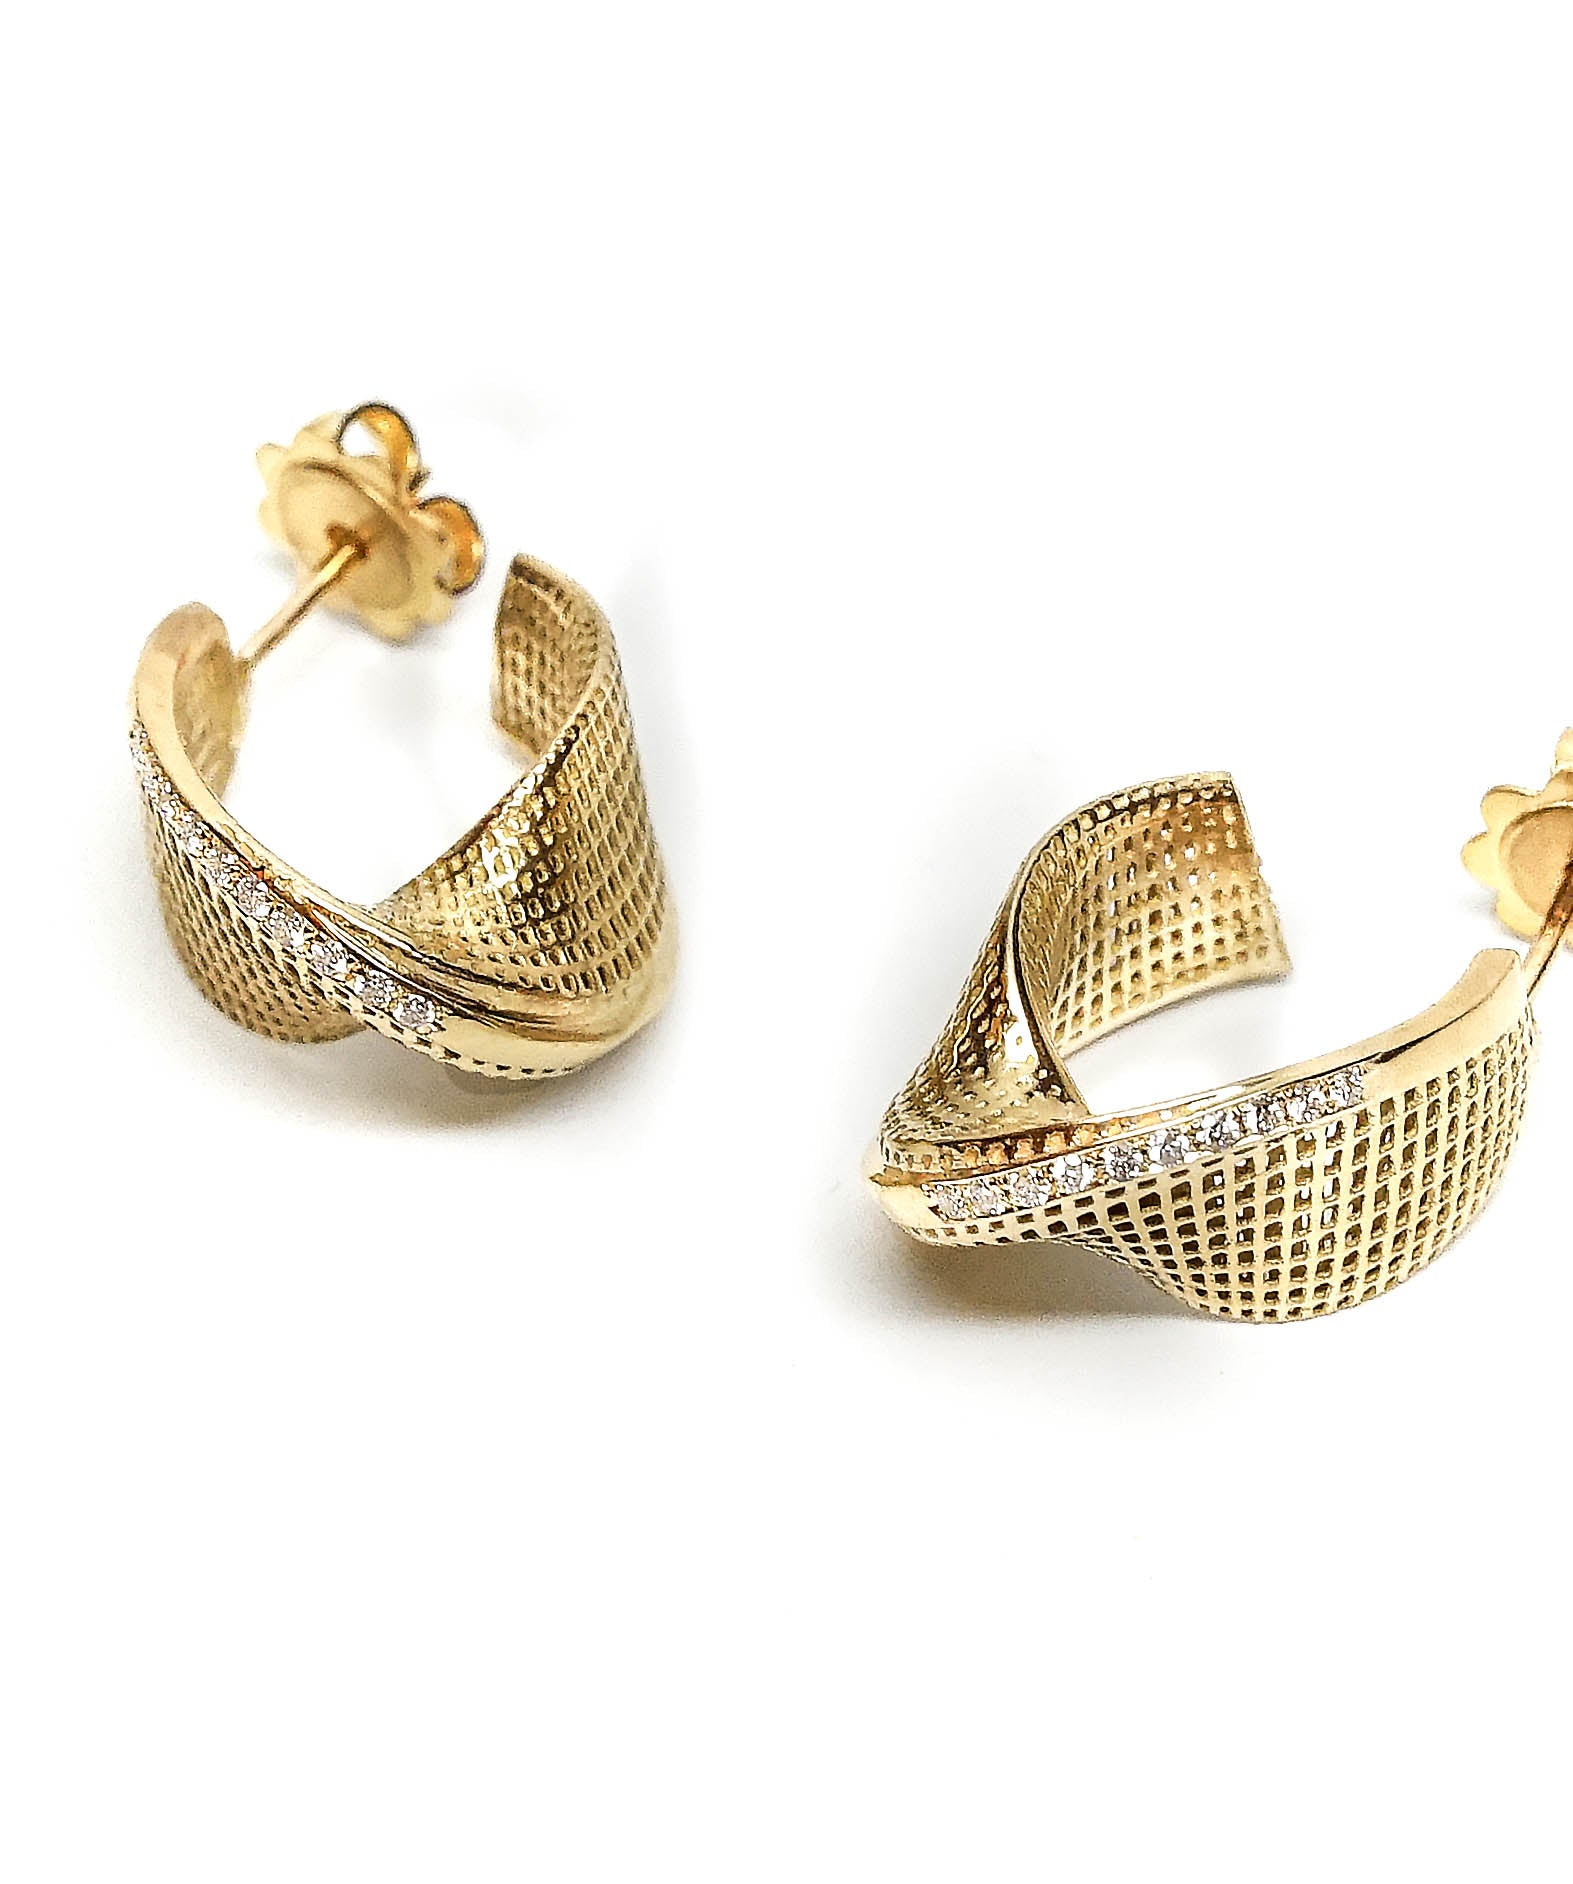 18K yellow gold- Diamonds Small Mobius Modern Earrings -pave diamonds line